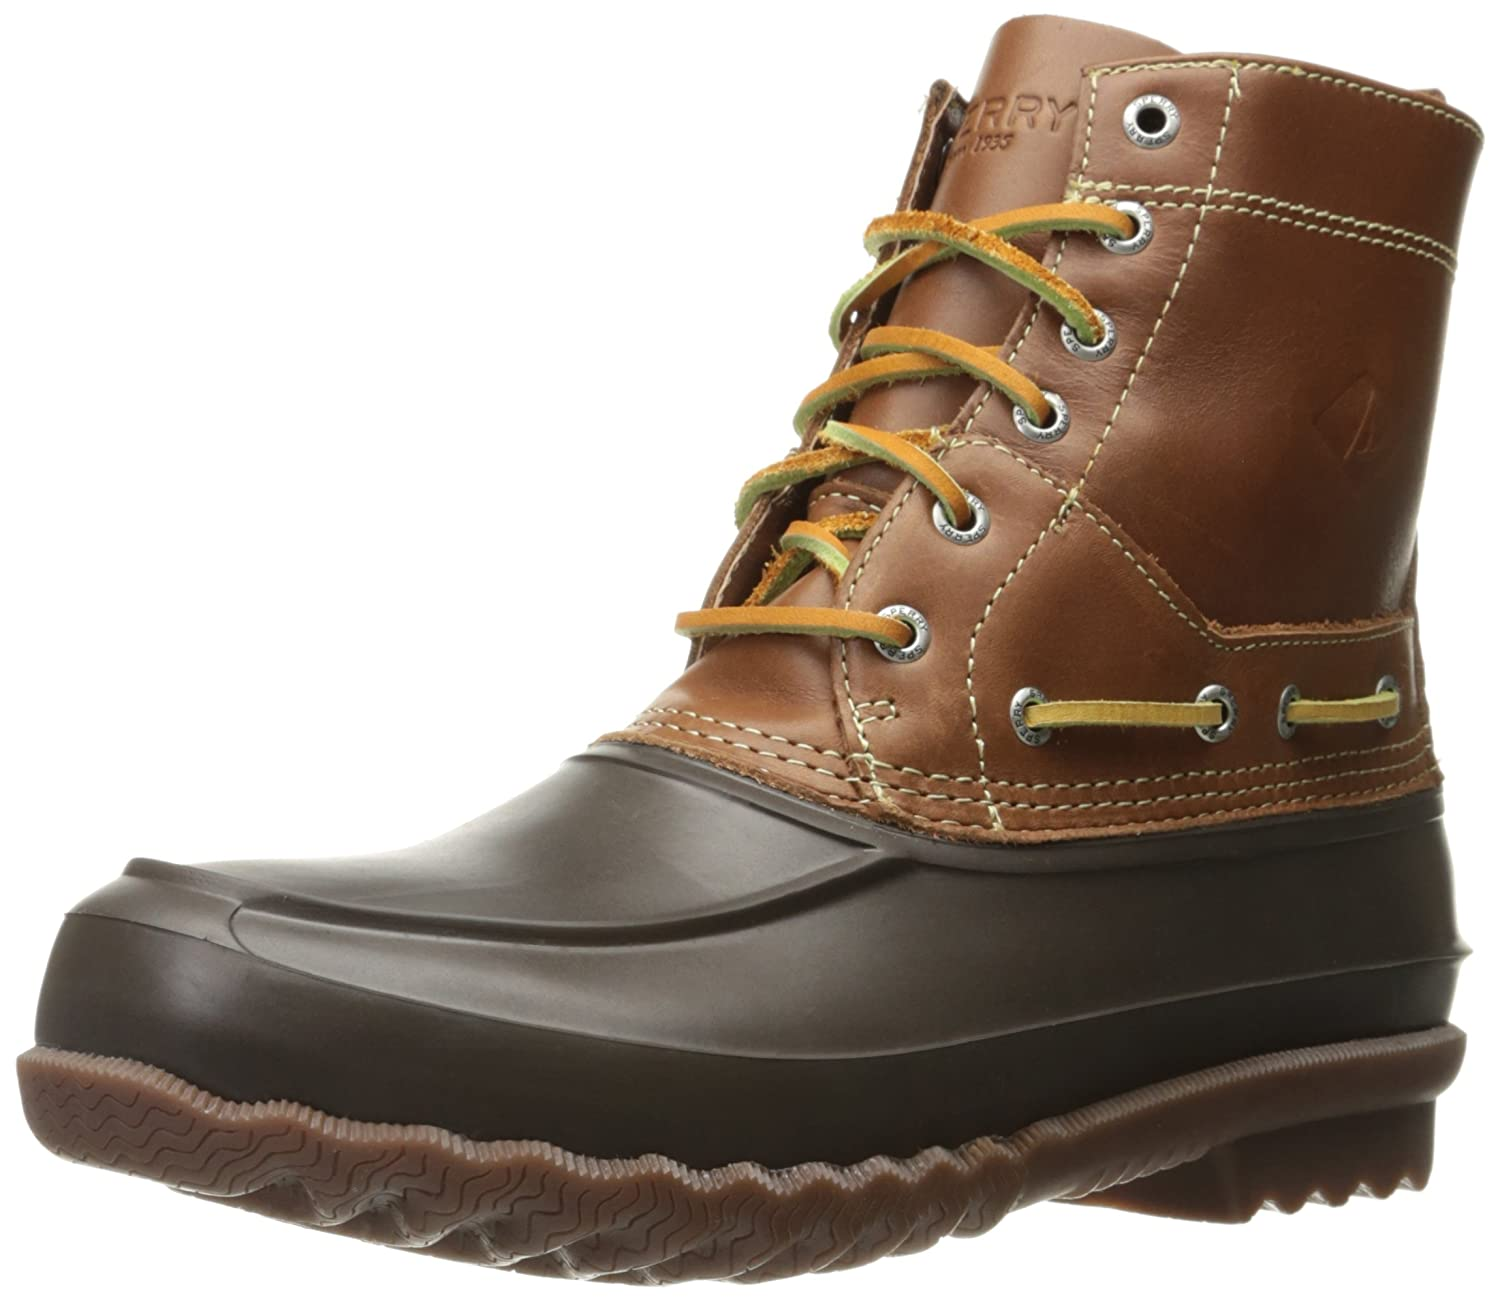 Sperry Herren Decoy Stiefel Leather Schneestiefel